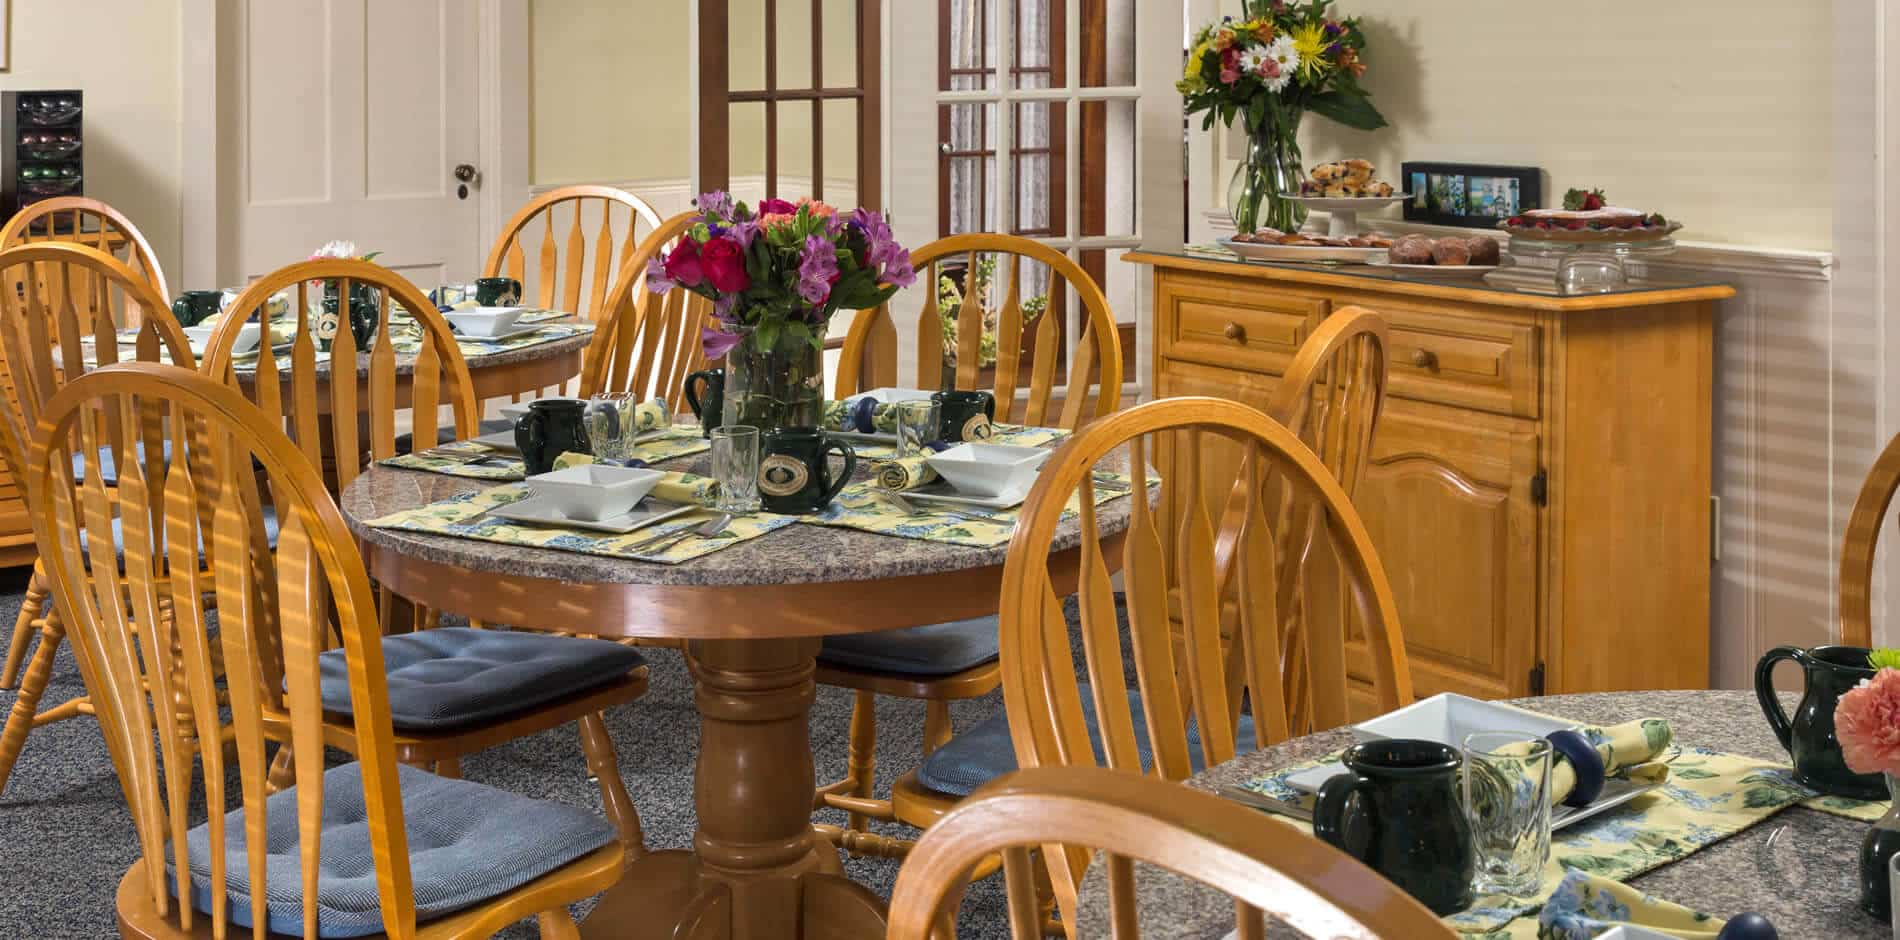 Sunny dining room with round tables and chairs set for a meal and fresh flowers